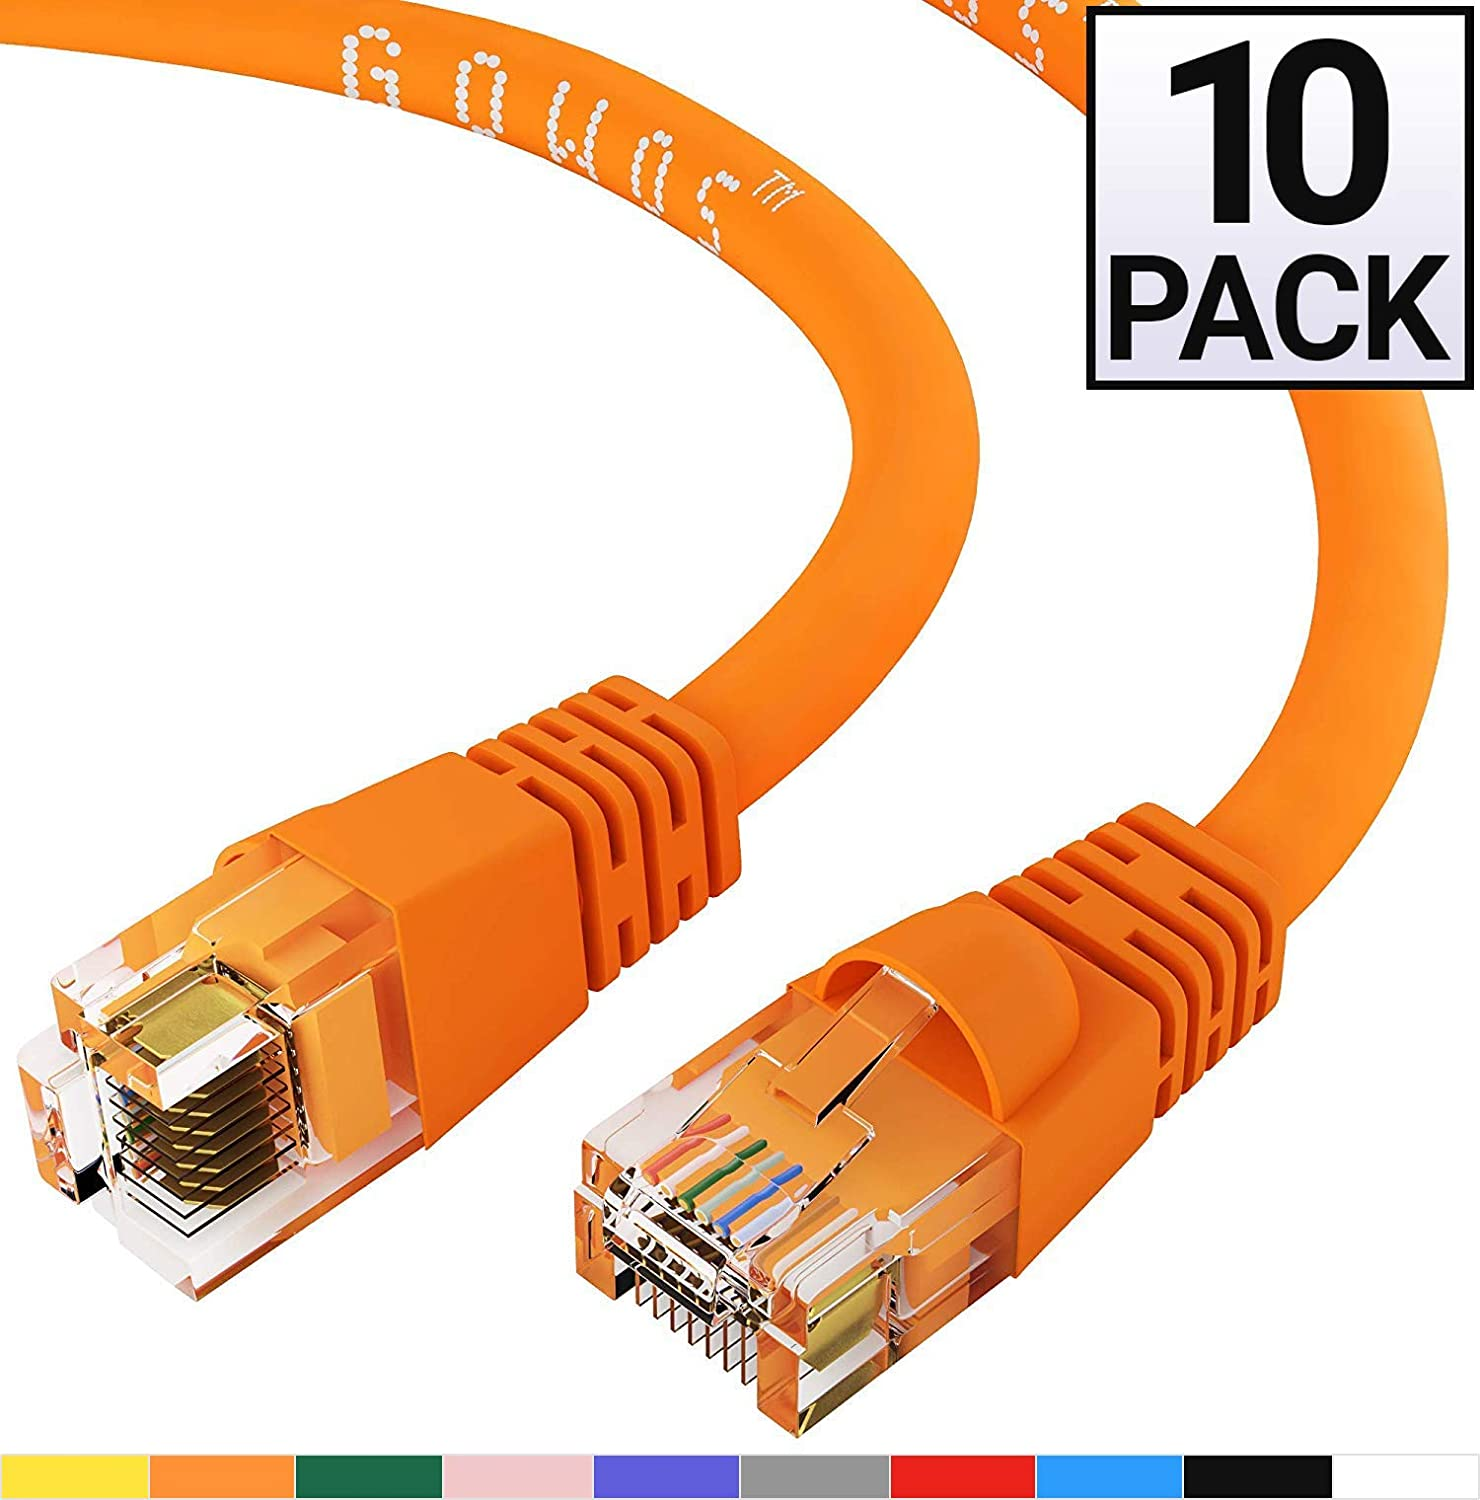 GOWOS 10-Pack Available in 28 Lengths and 10 Colors RJ45 10Gbps High Speed LAN Internet Patch Cord Cat6 Ethernet Cable Computer Network Cable with Snagless Connector 3 Feet - Orange UTP